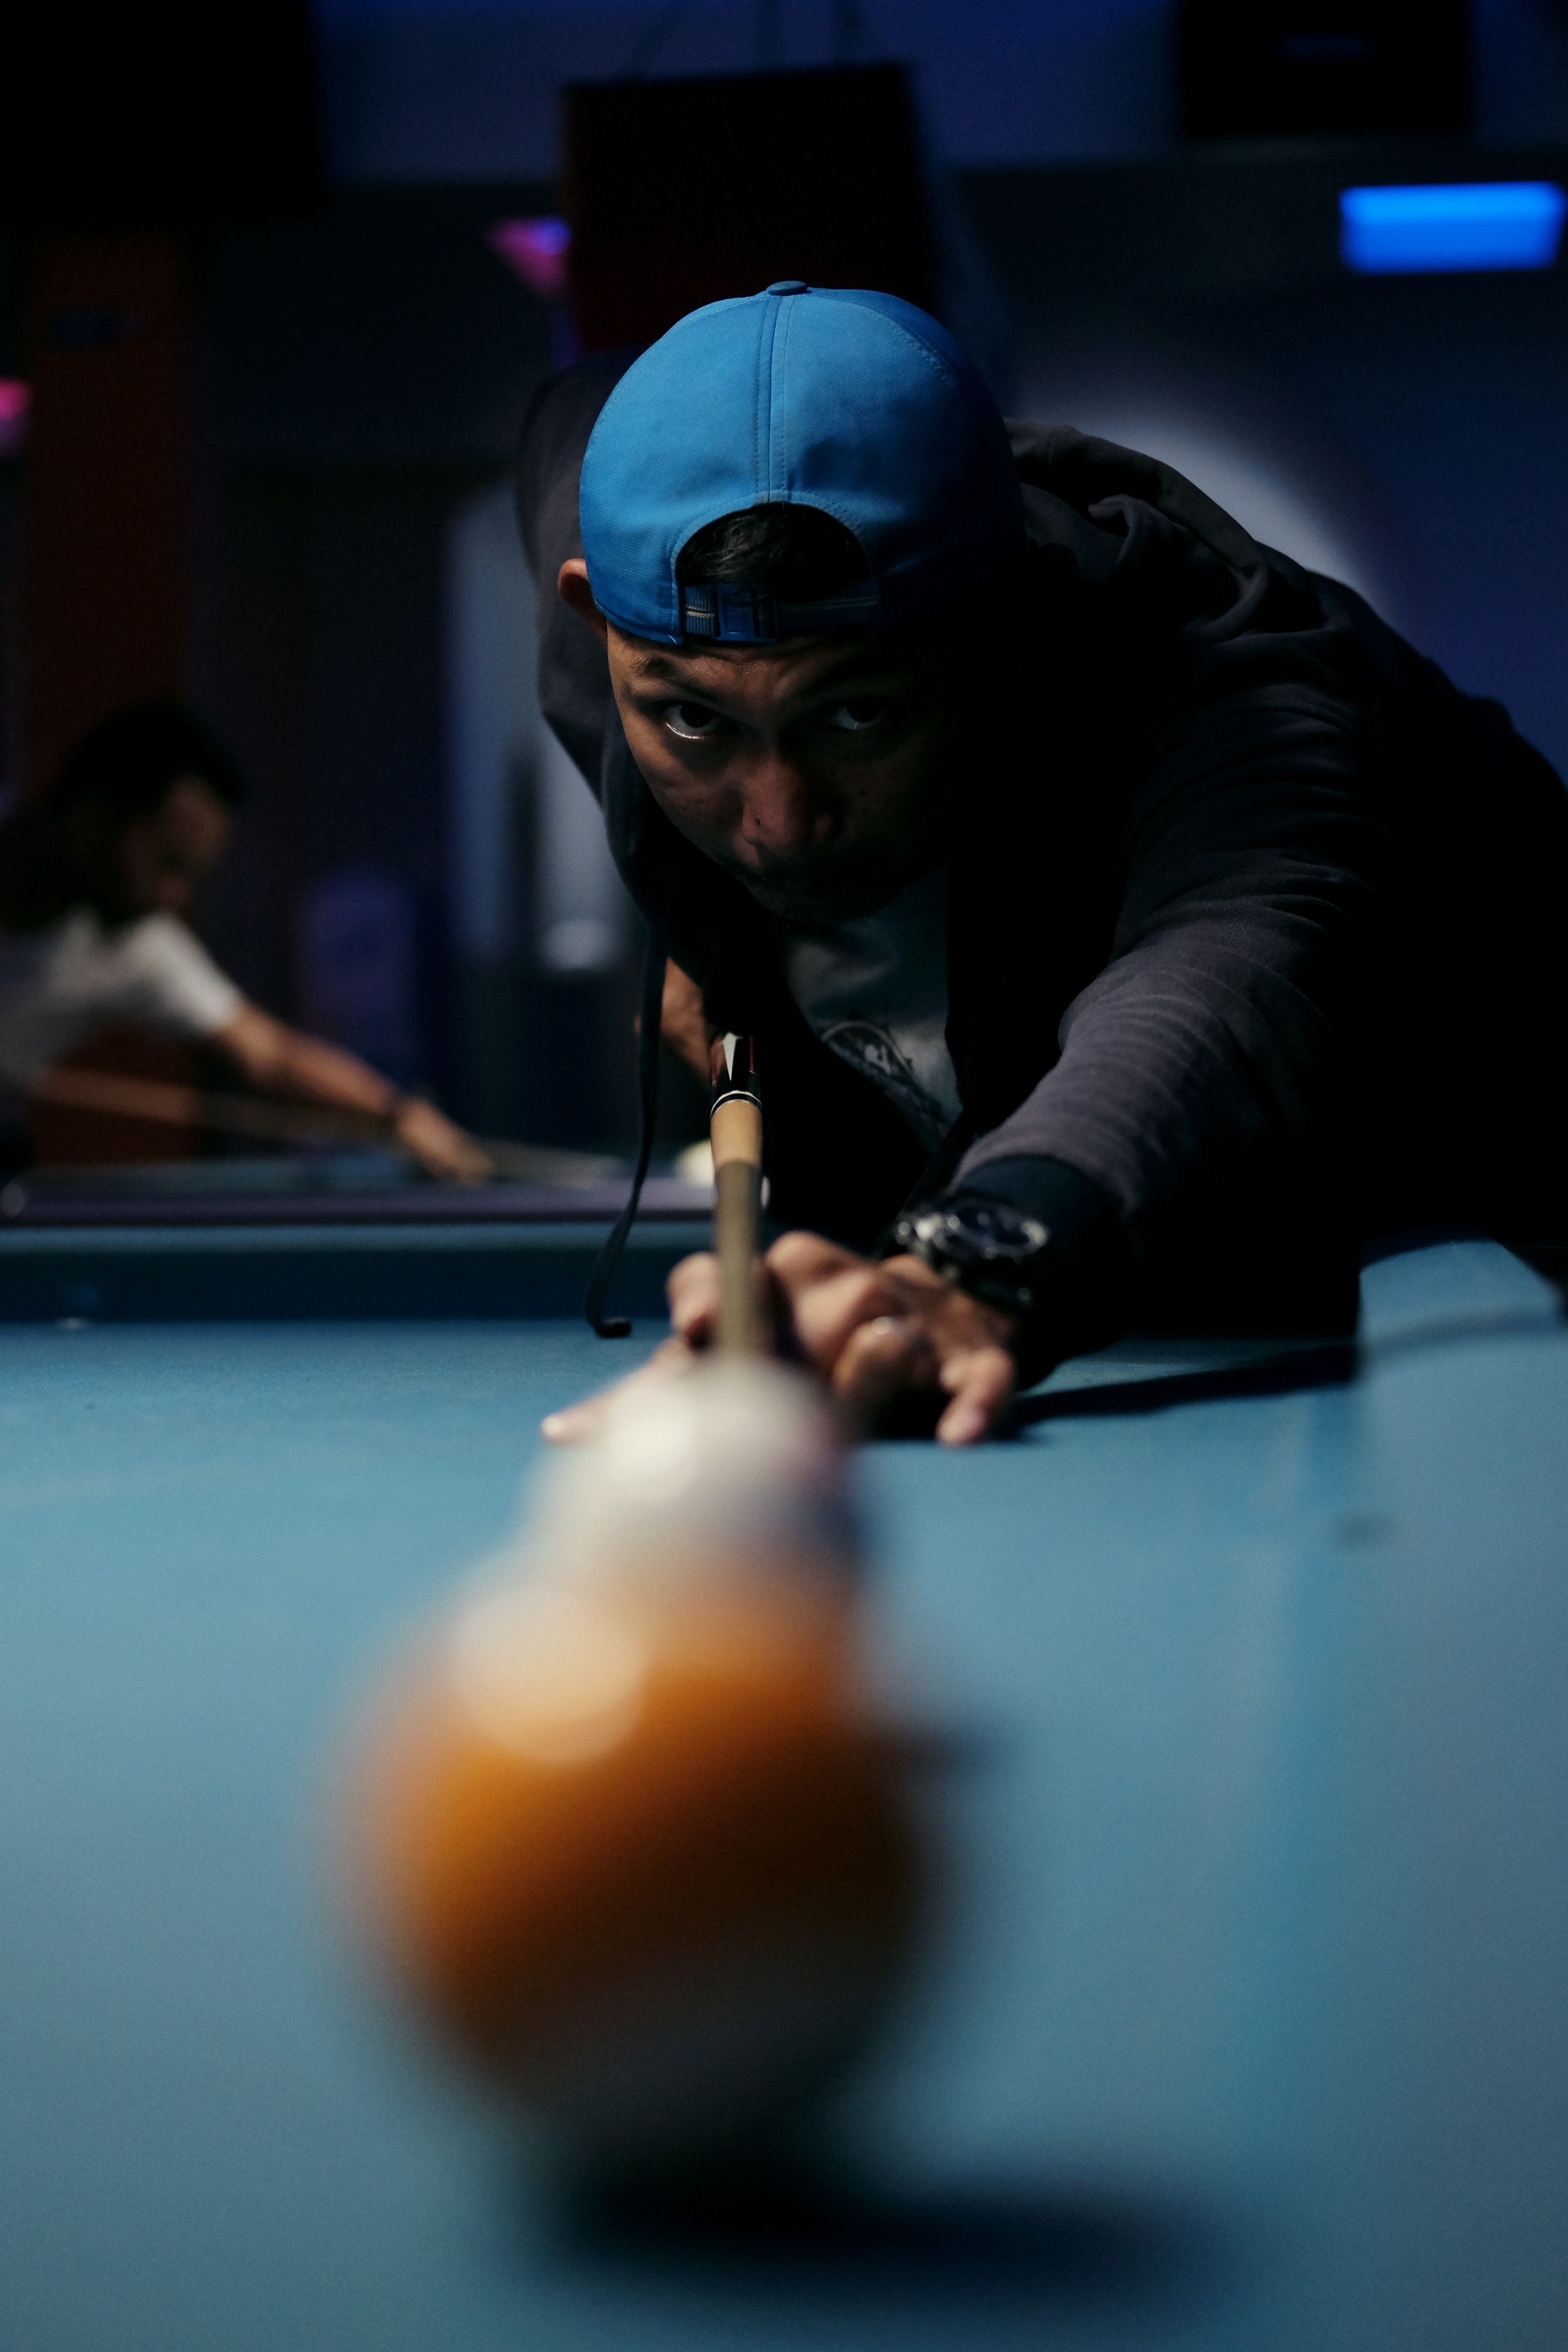 A man with a hat on playing pool.